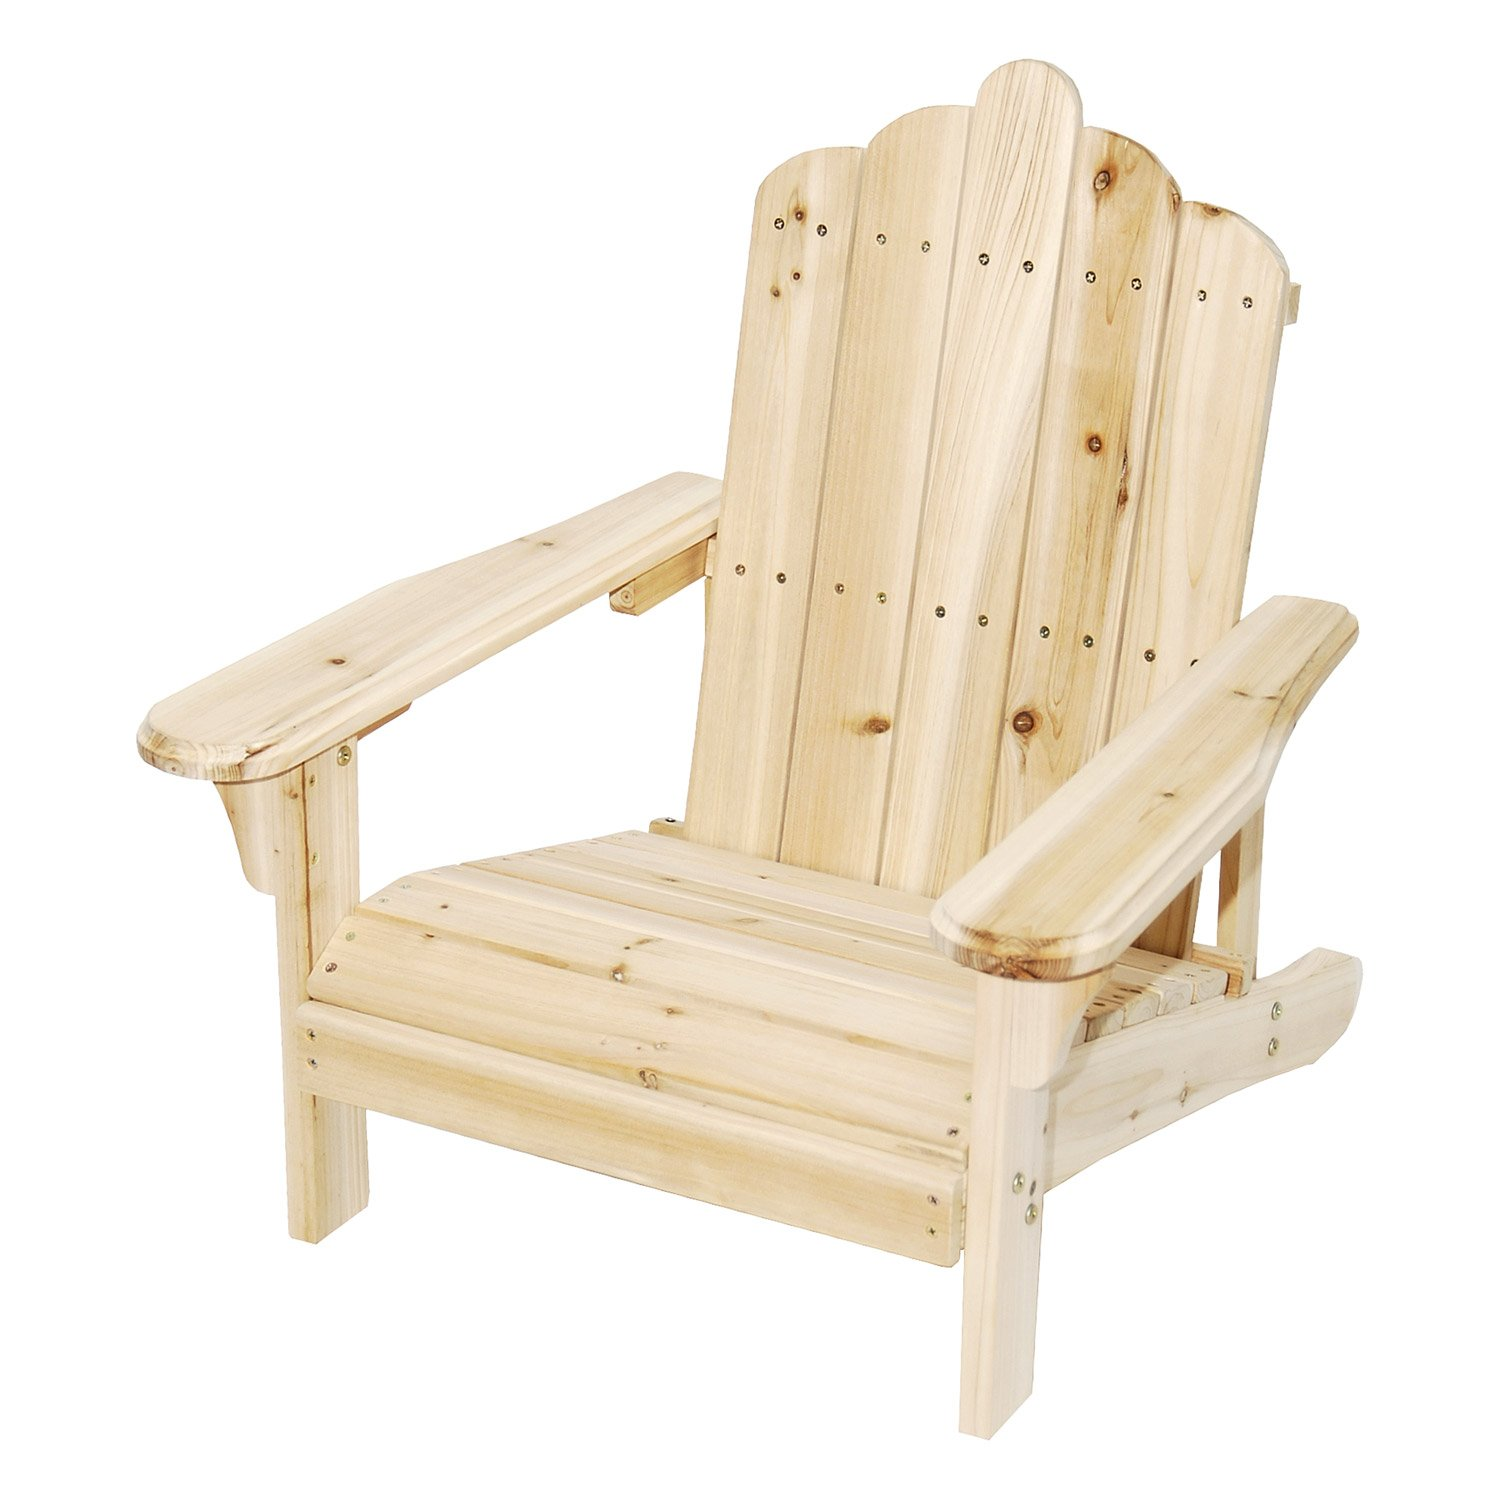 Astonica Unfinished Junior Solid Fir Wood Adirondack Chair For Exterior Home Design and Outdoor Seating - 50108144